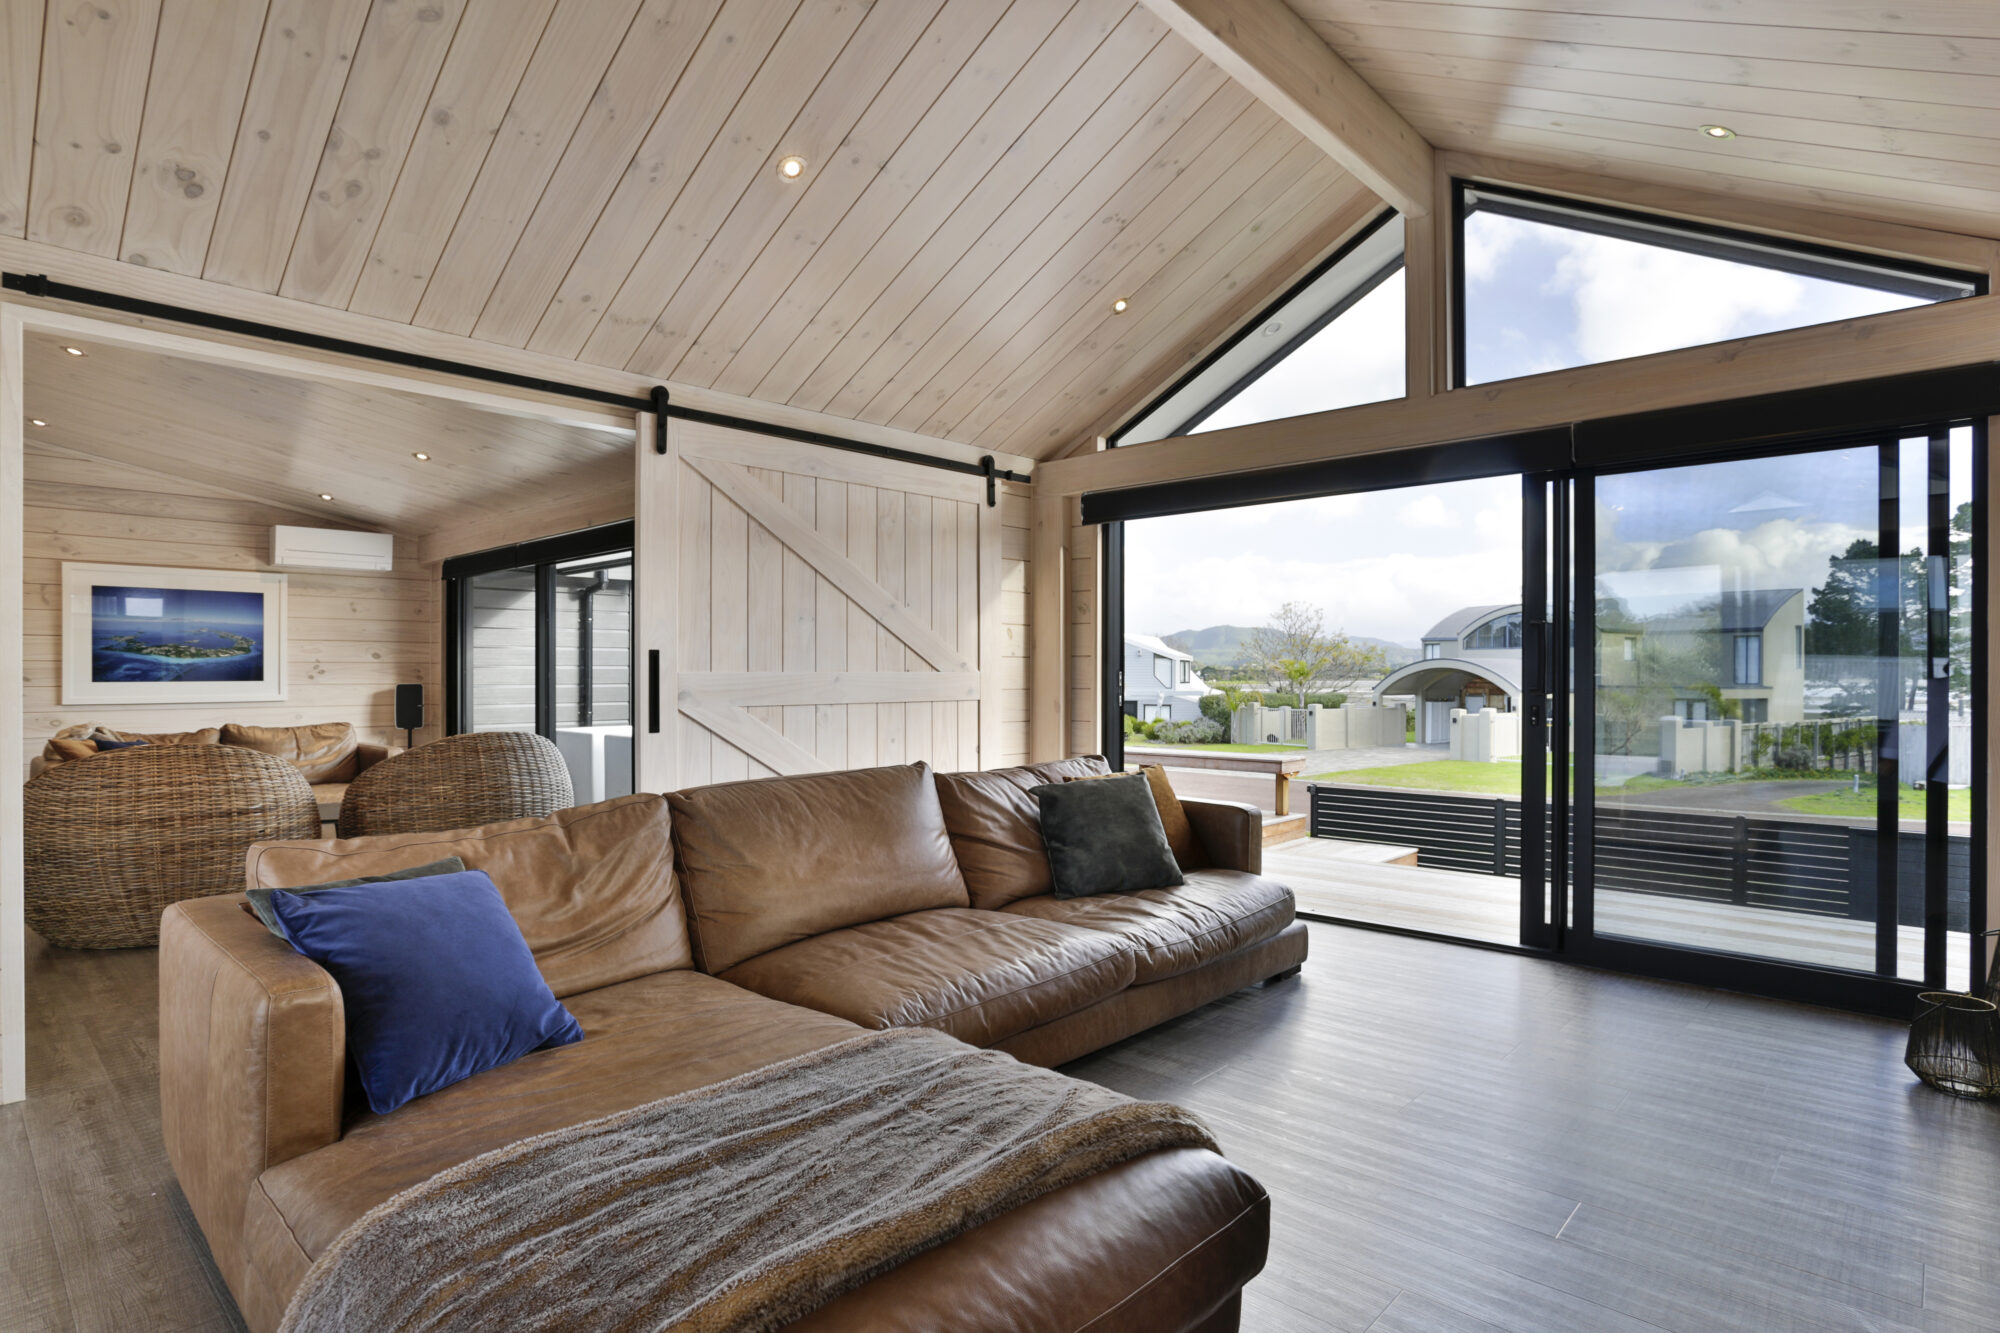 Extra natural light provided by gable end of lounge